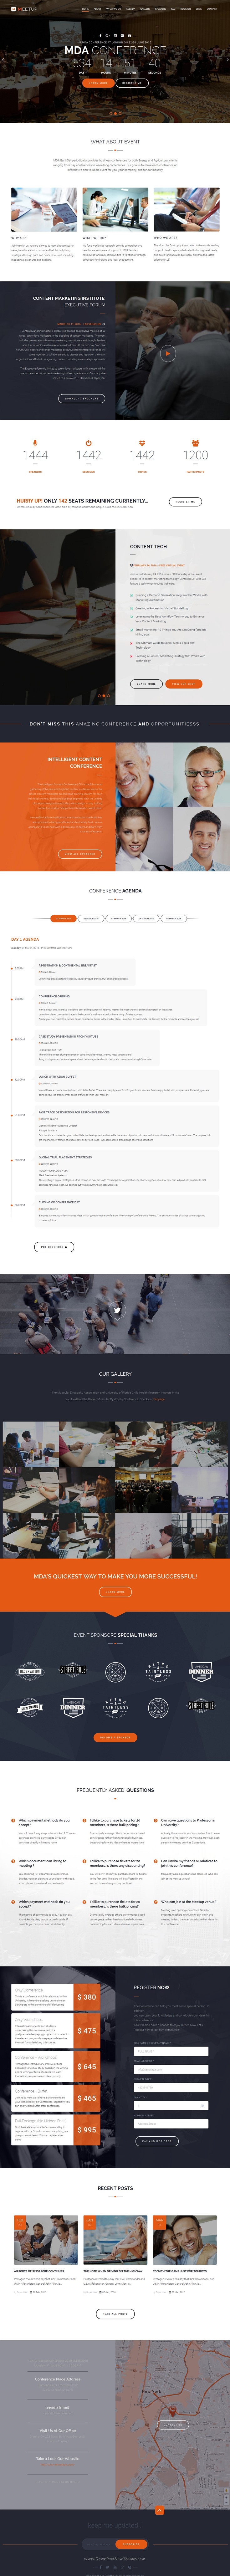 Meetup Conference Event Joomla Template  Event Website Template